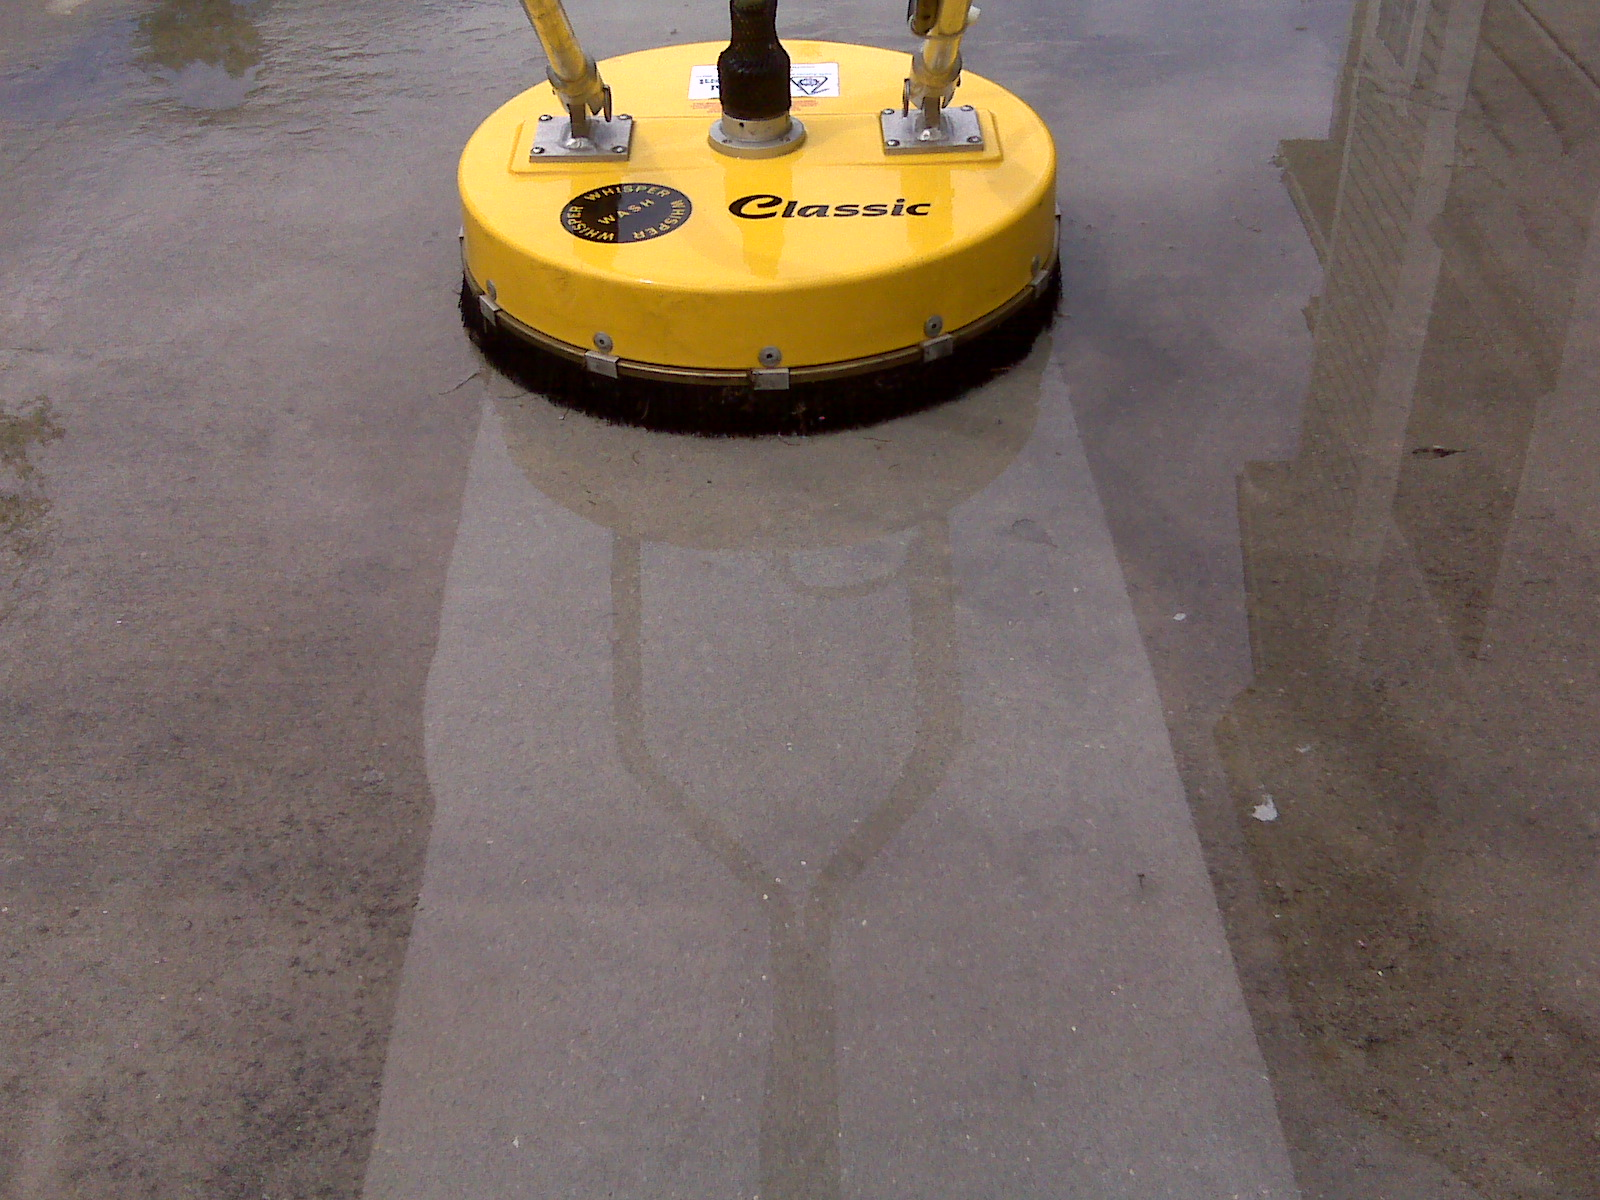 Pressure Washing Services In Katy Texas